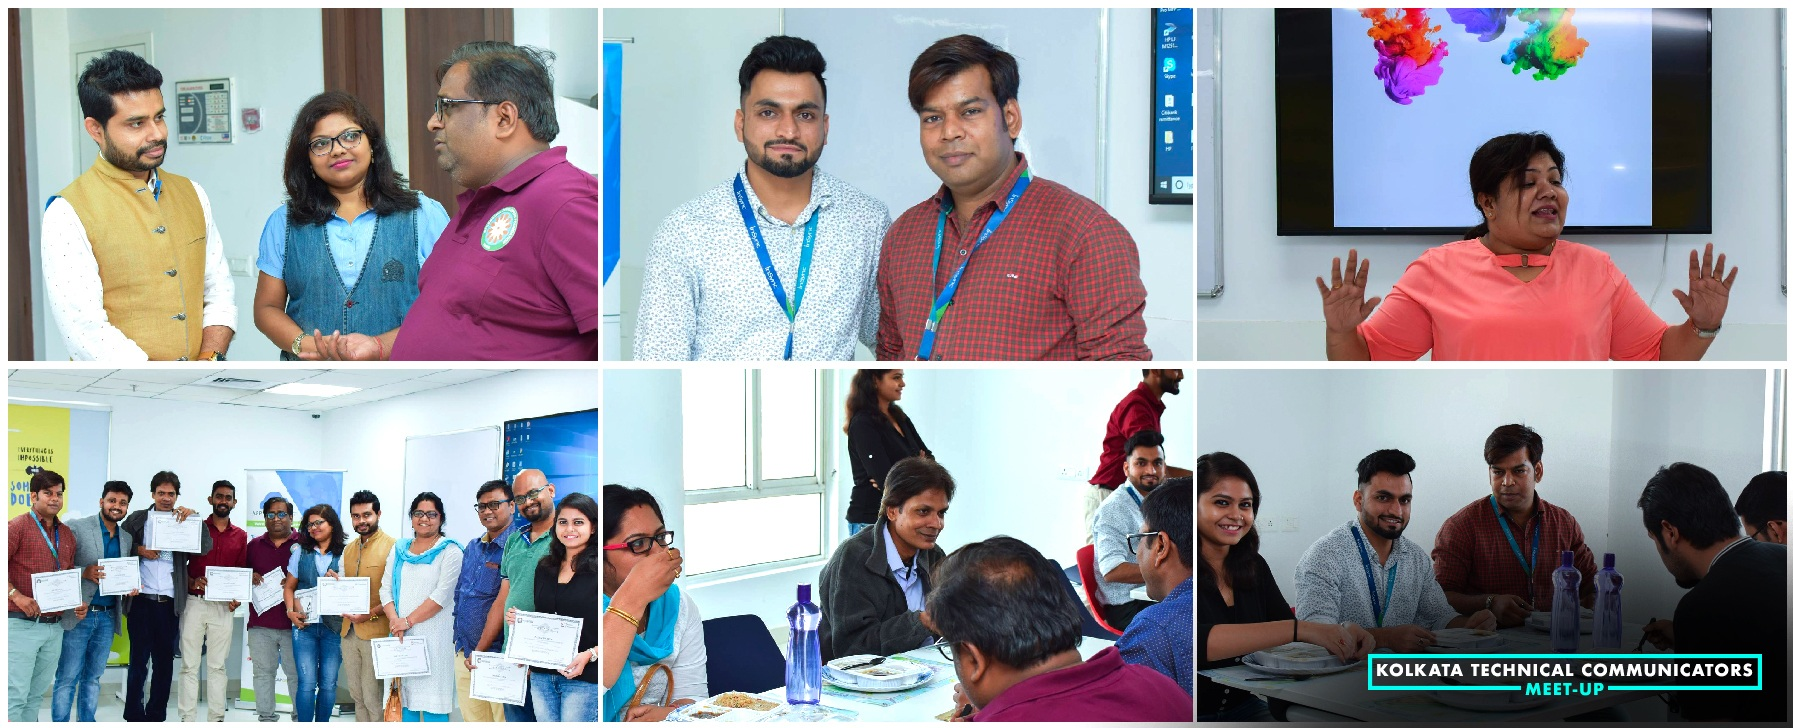 Kolkata-Technical-Communicators-Meet-up-at-InSync